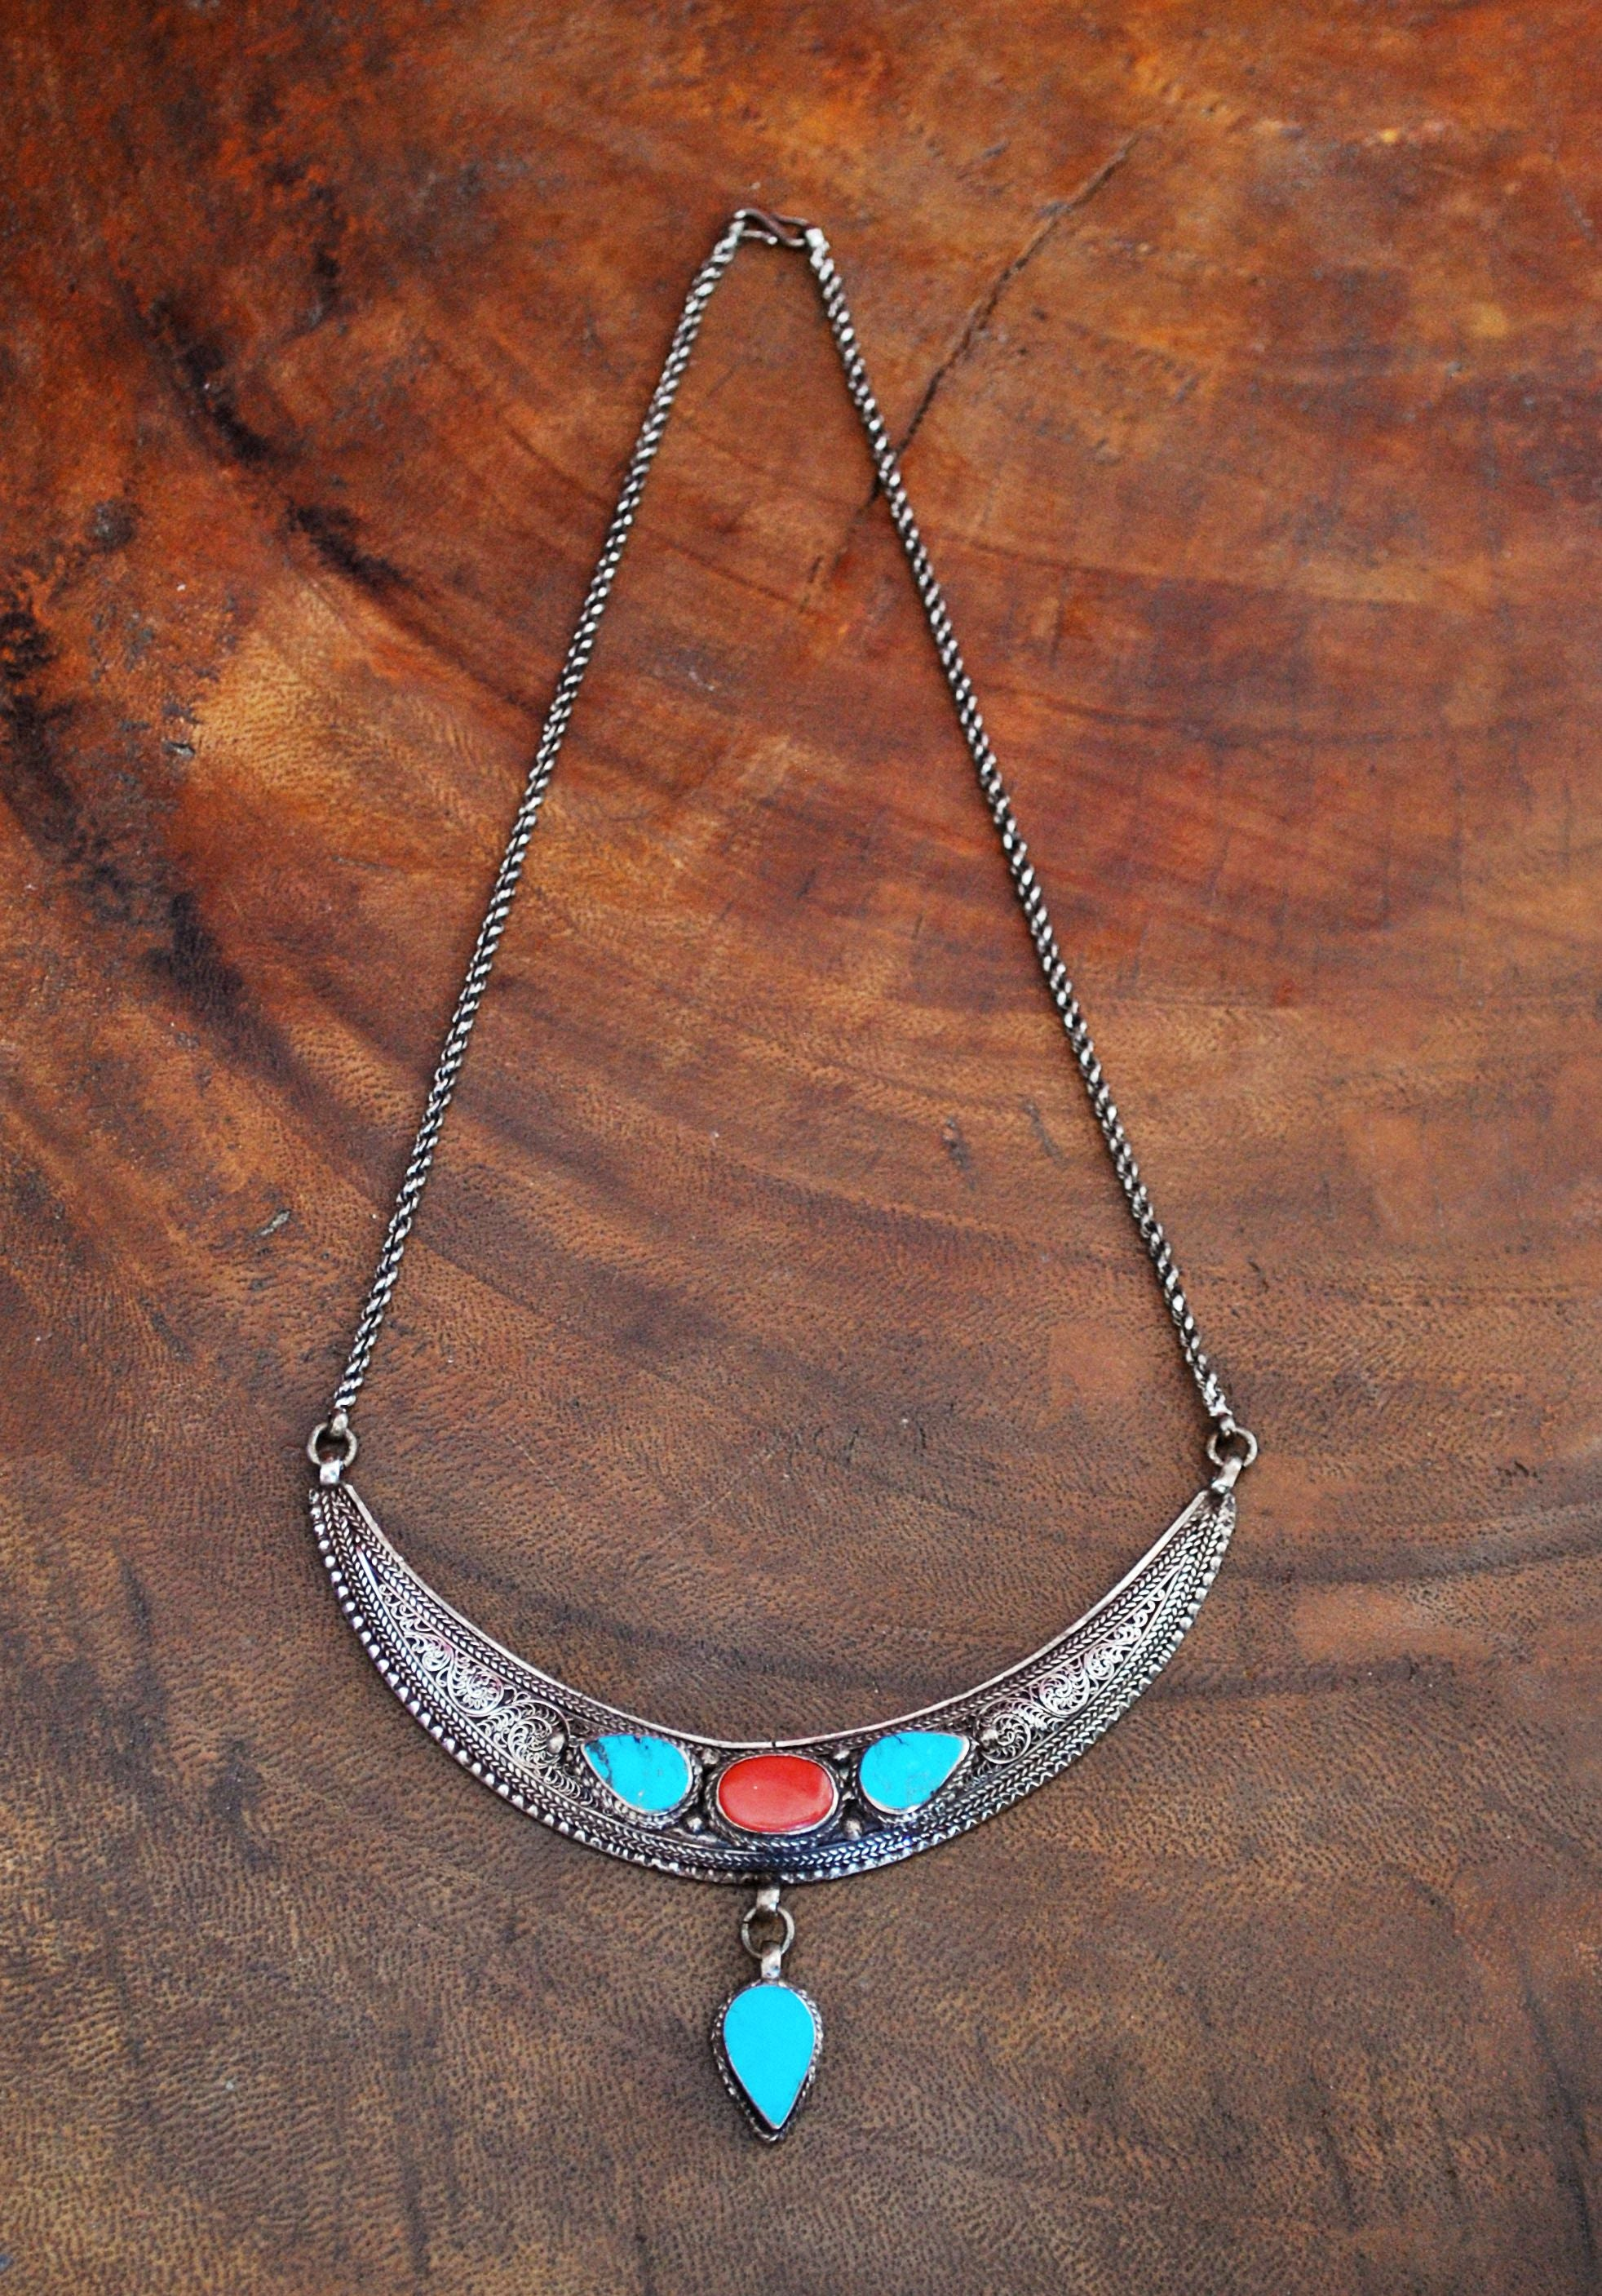 Nepali Crescent Moon Necklace with Coral and Turquoise